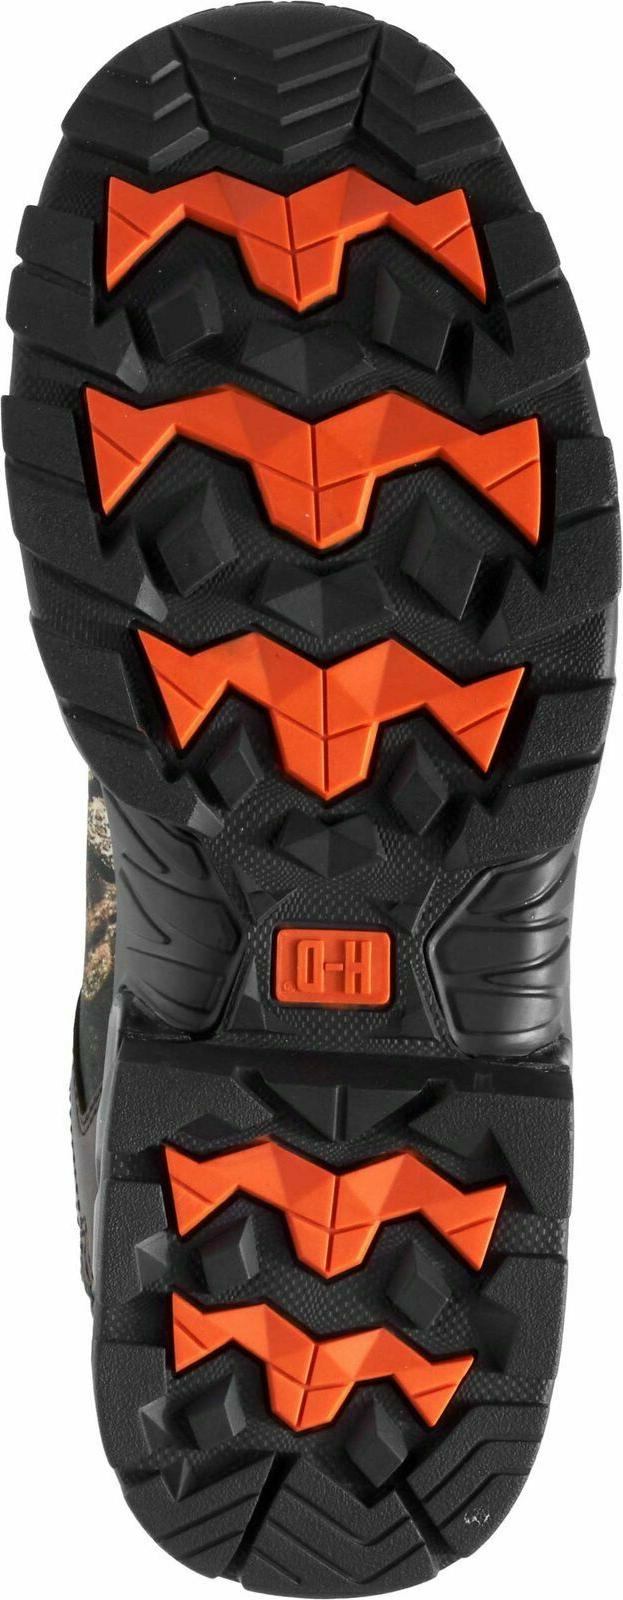 Harley-Davidson Camo Boots Motorcycle Size